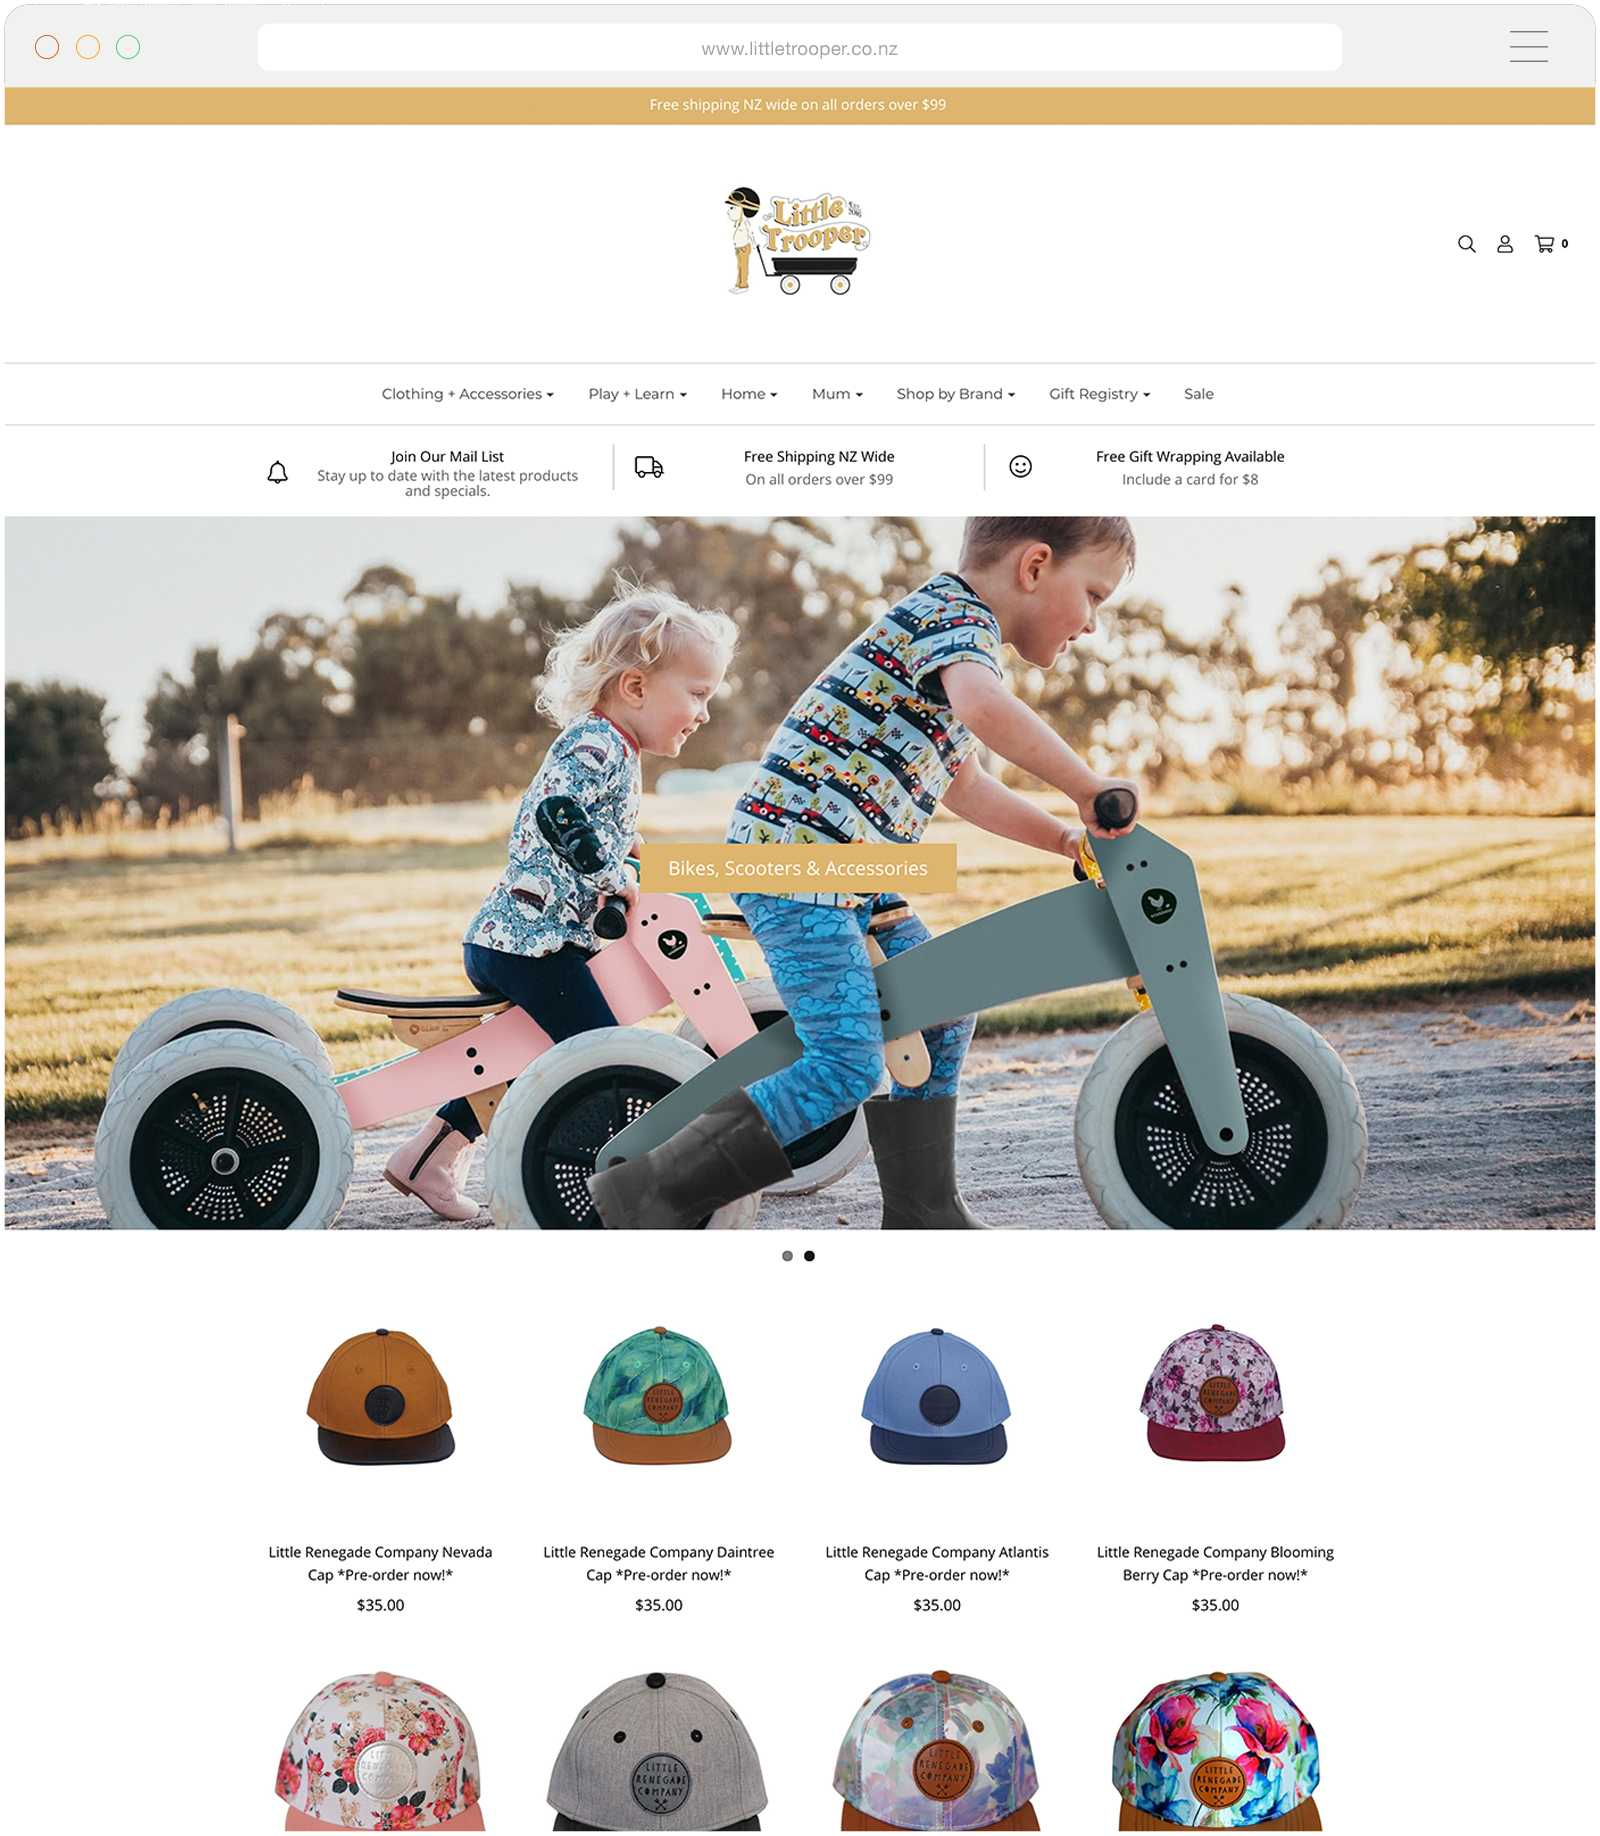 Shopify Websites Tauranga - Little Trooper